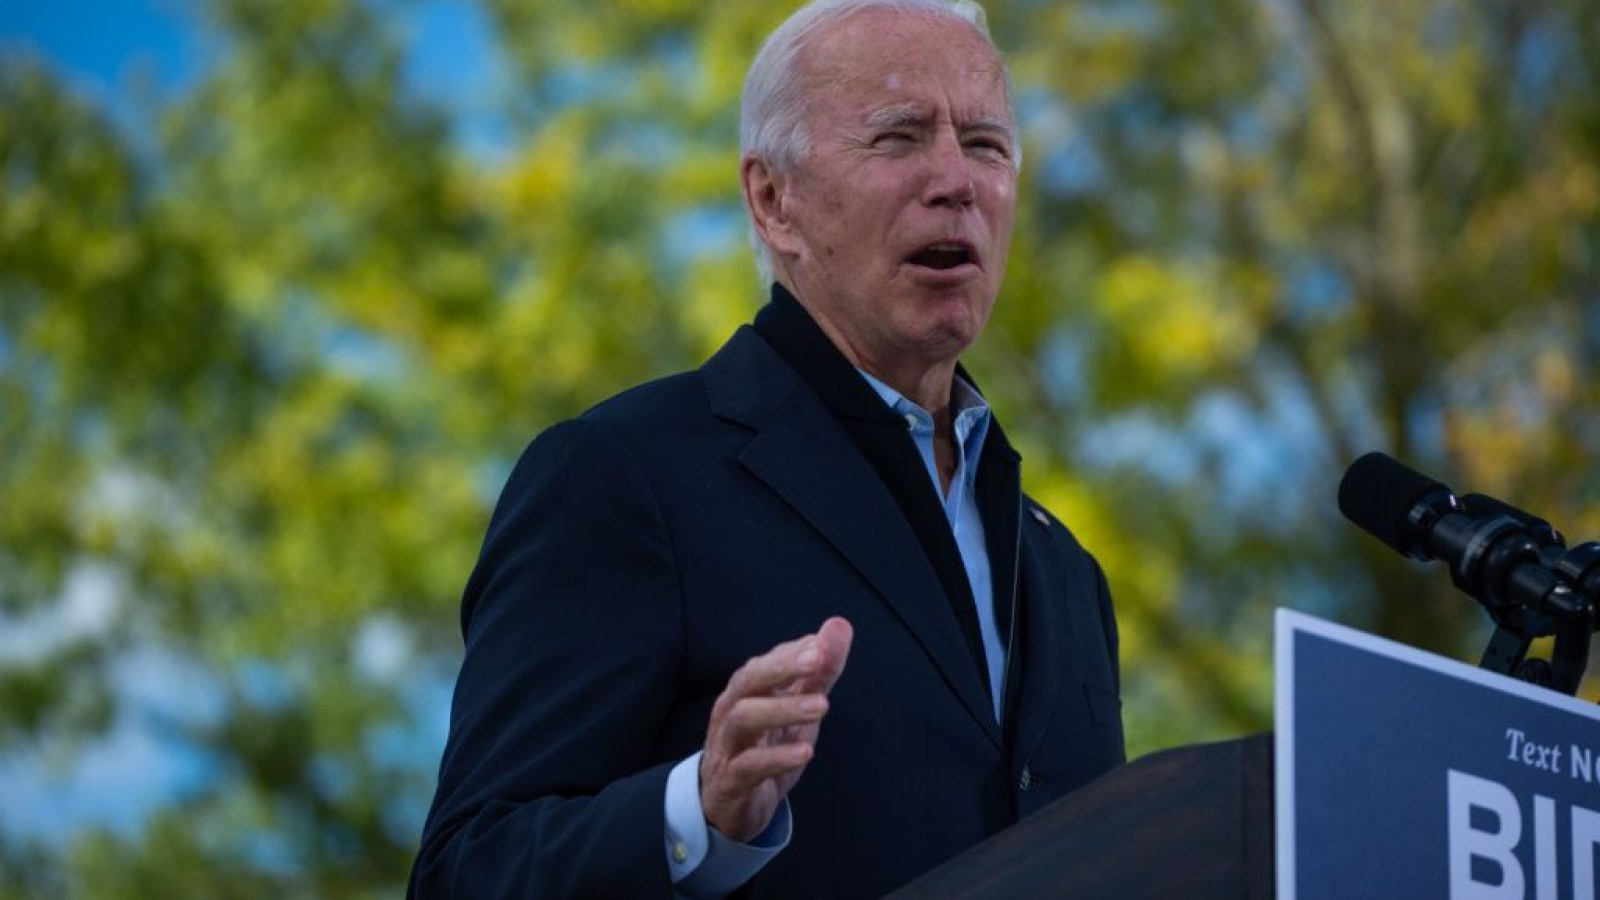 Joe Biden Urges Nigeria to End Attacks on Protesters Amid Calls for  President Buhari to Resign